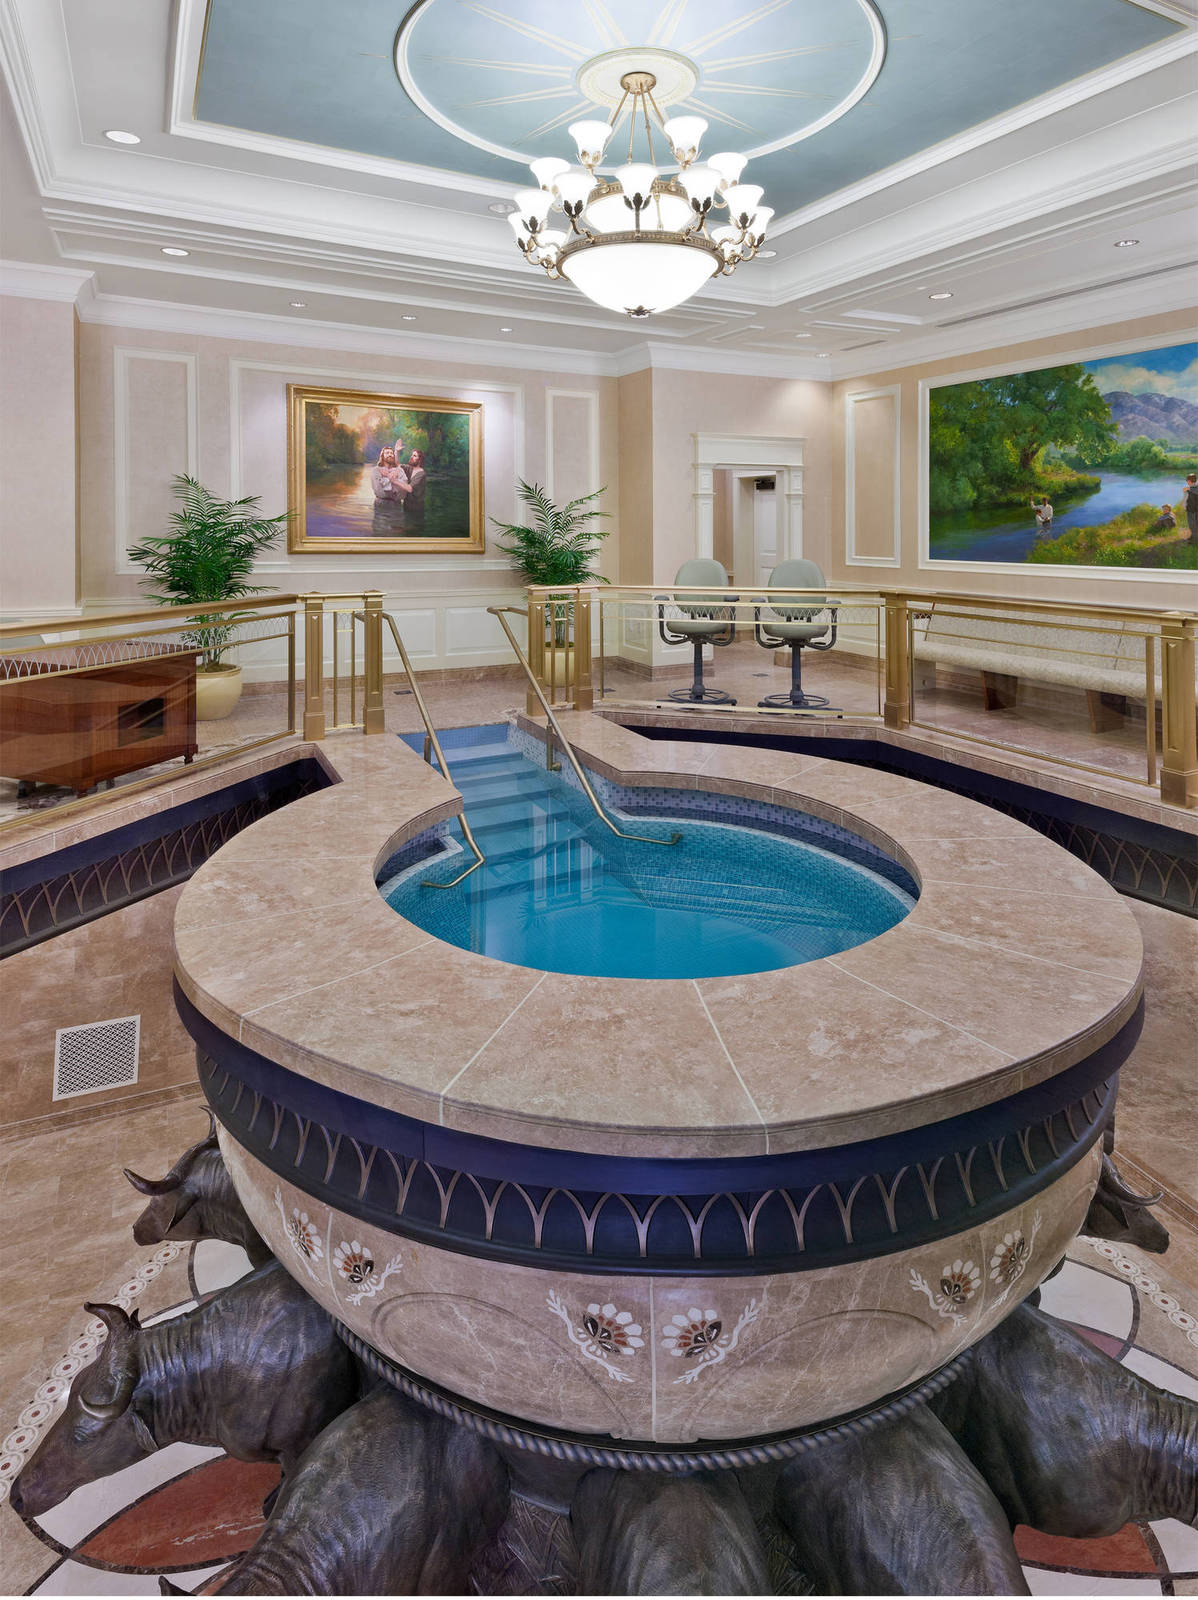 temple city big and beautiful singles Shiki seafood buffet | temple city | 91780 category  beautiful world 20,931 views 13:52 the incredible homes of the top 10 richest people - duration .